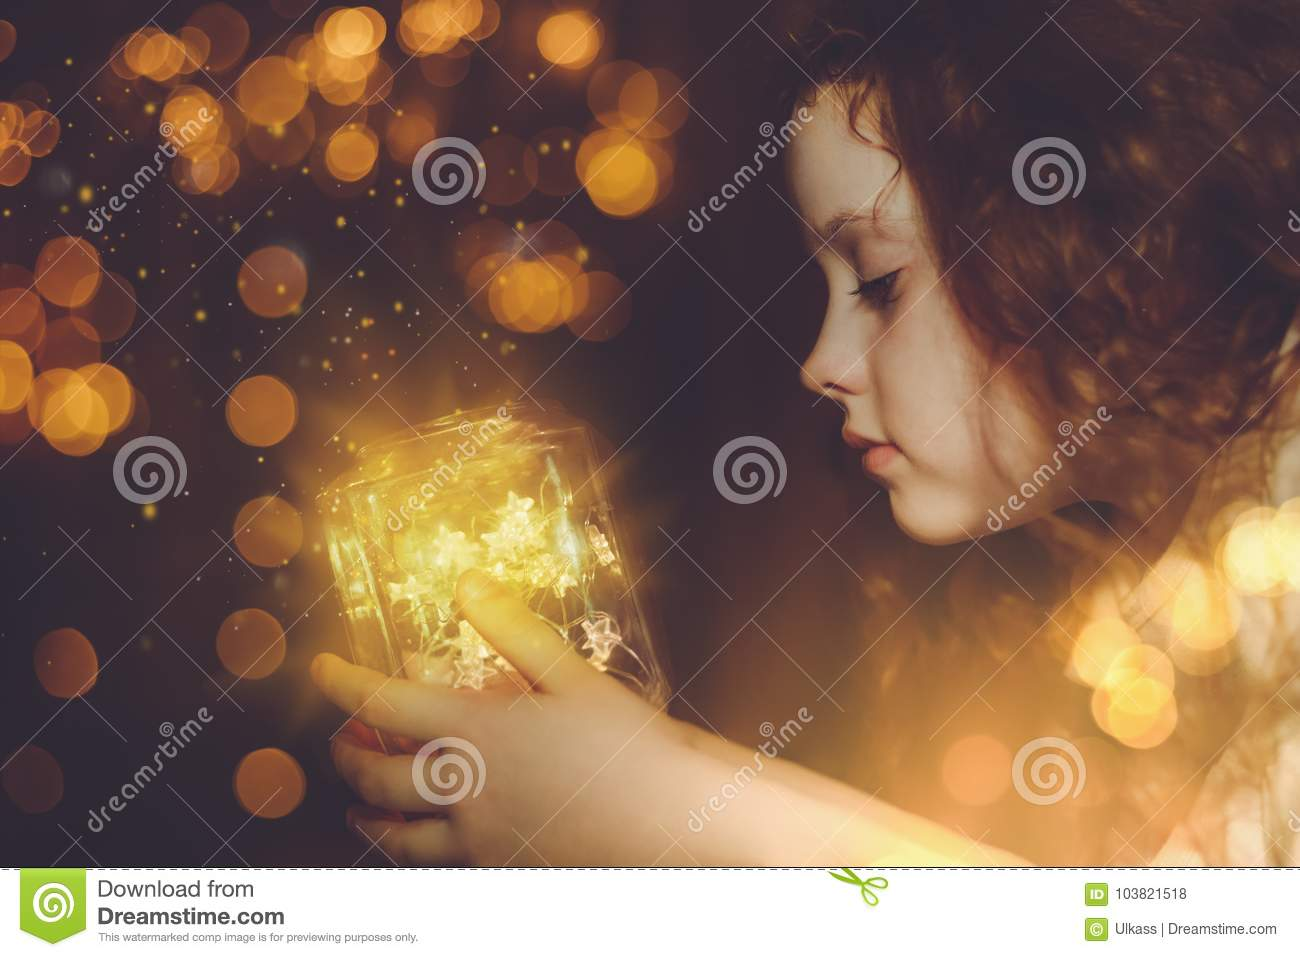 Download Little Girl Looking On The Magic Christmas Lamp. Stock Photo - Image of gift, merry: 103821518